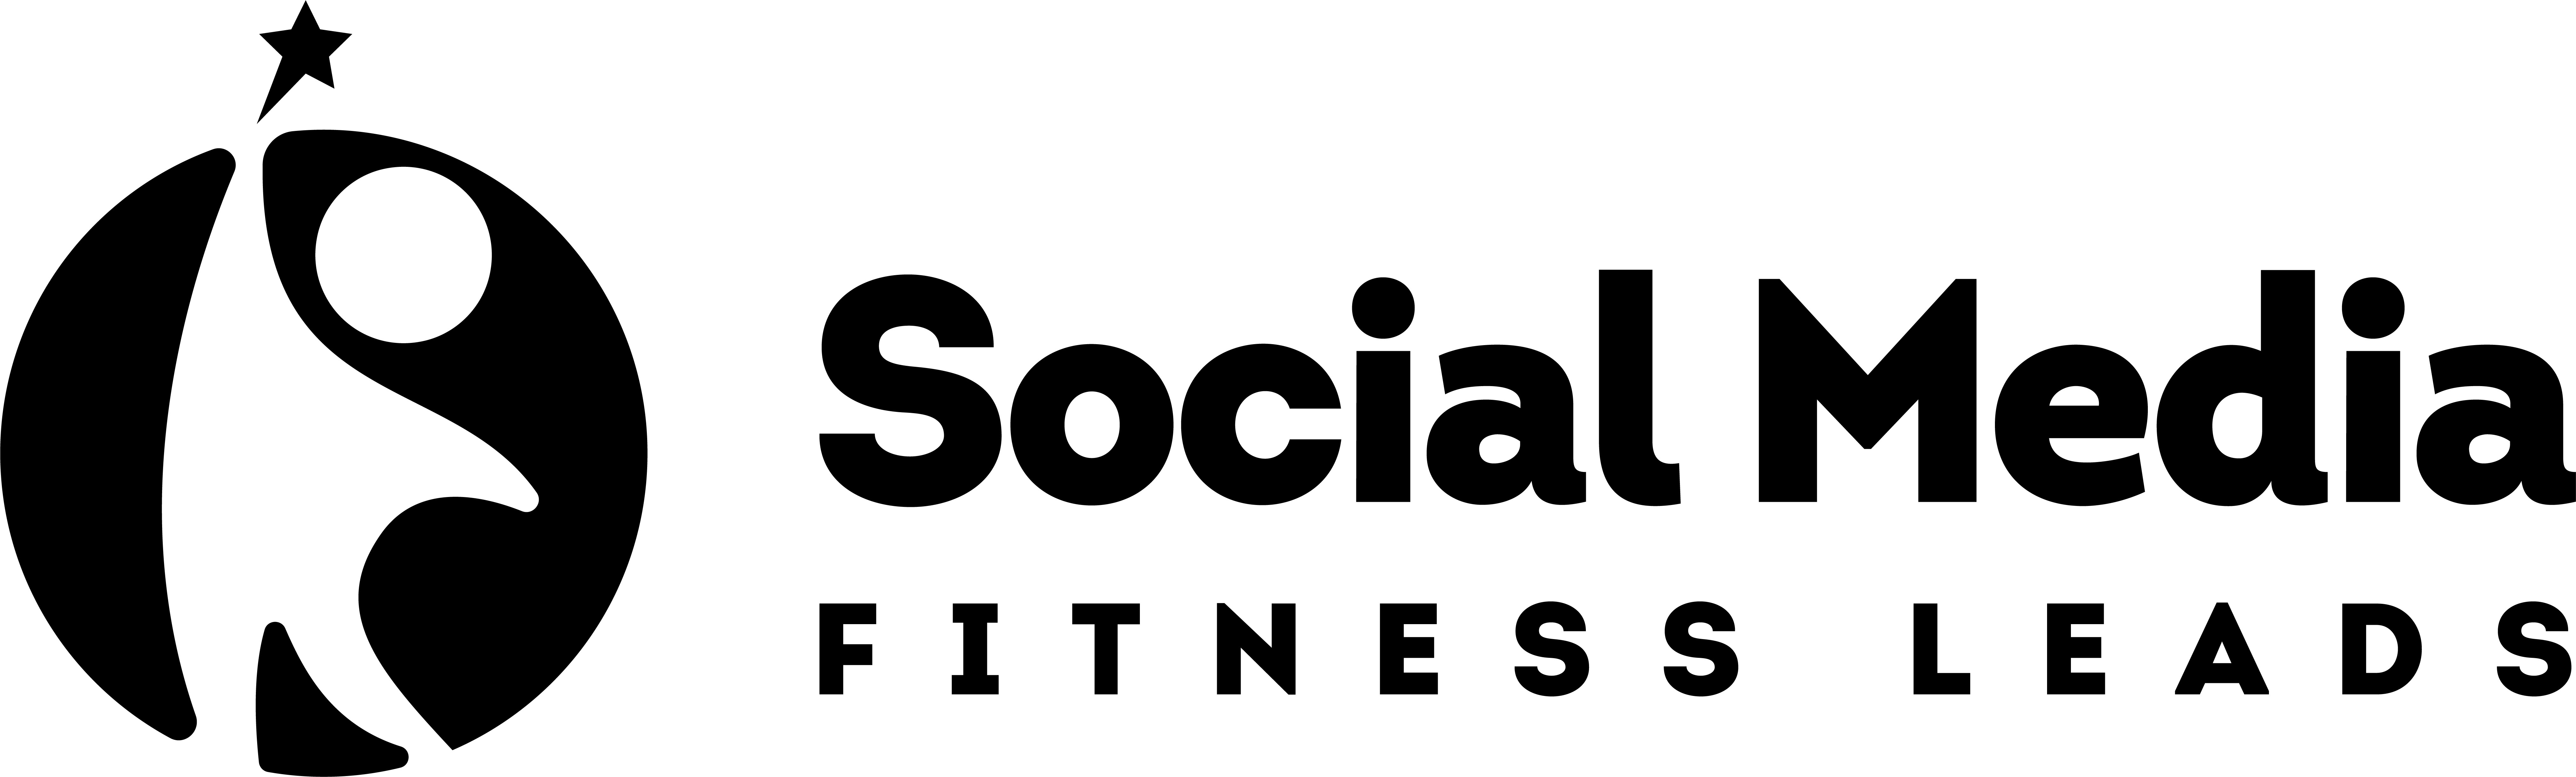 Design a modern social media lead logo for fitness coaches